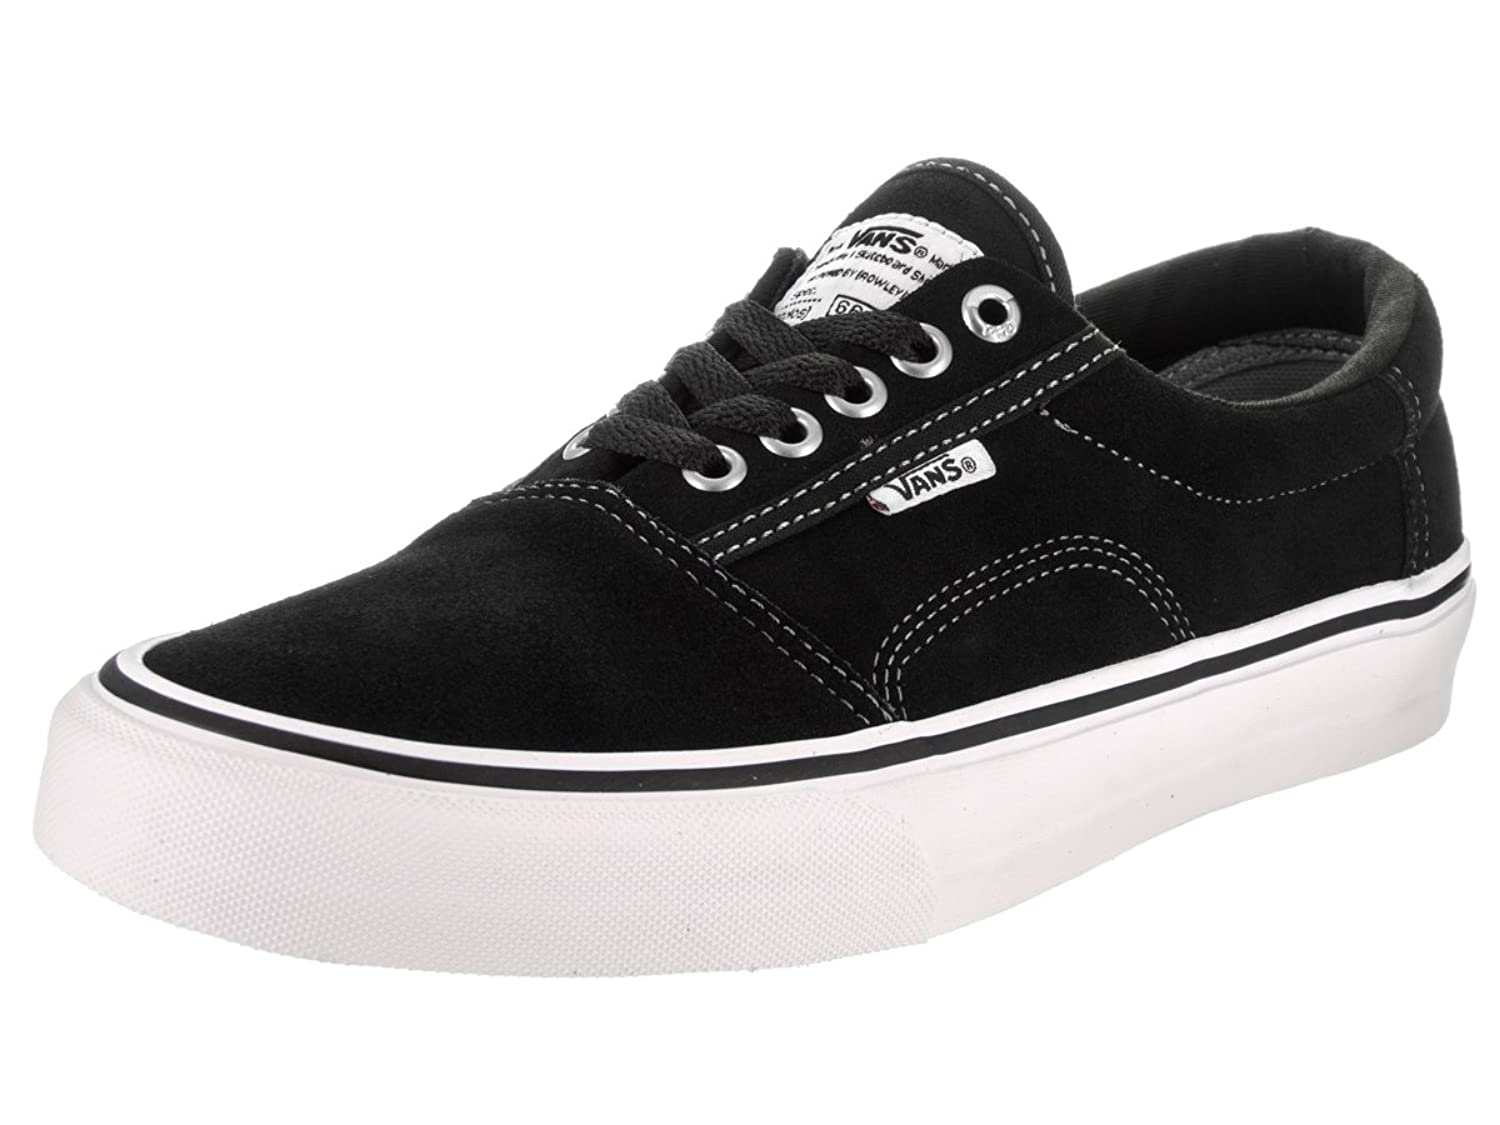 Vans Shoes – Rowley Solos Black White Walking Shoes daf73586a